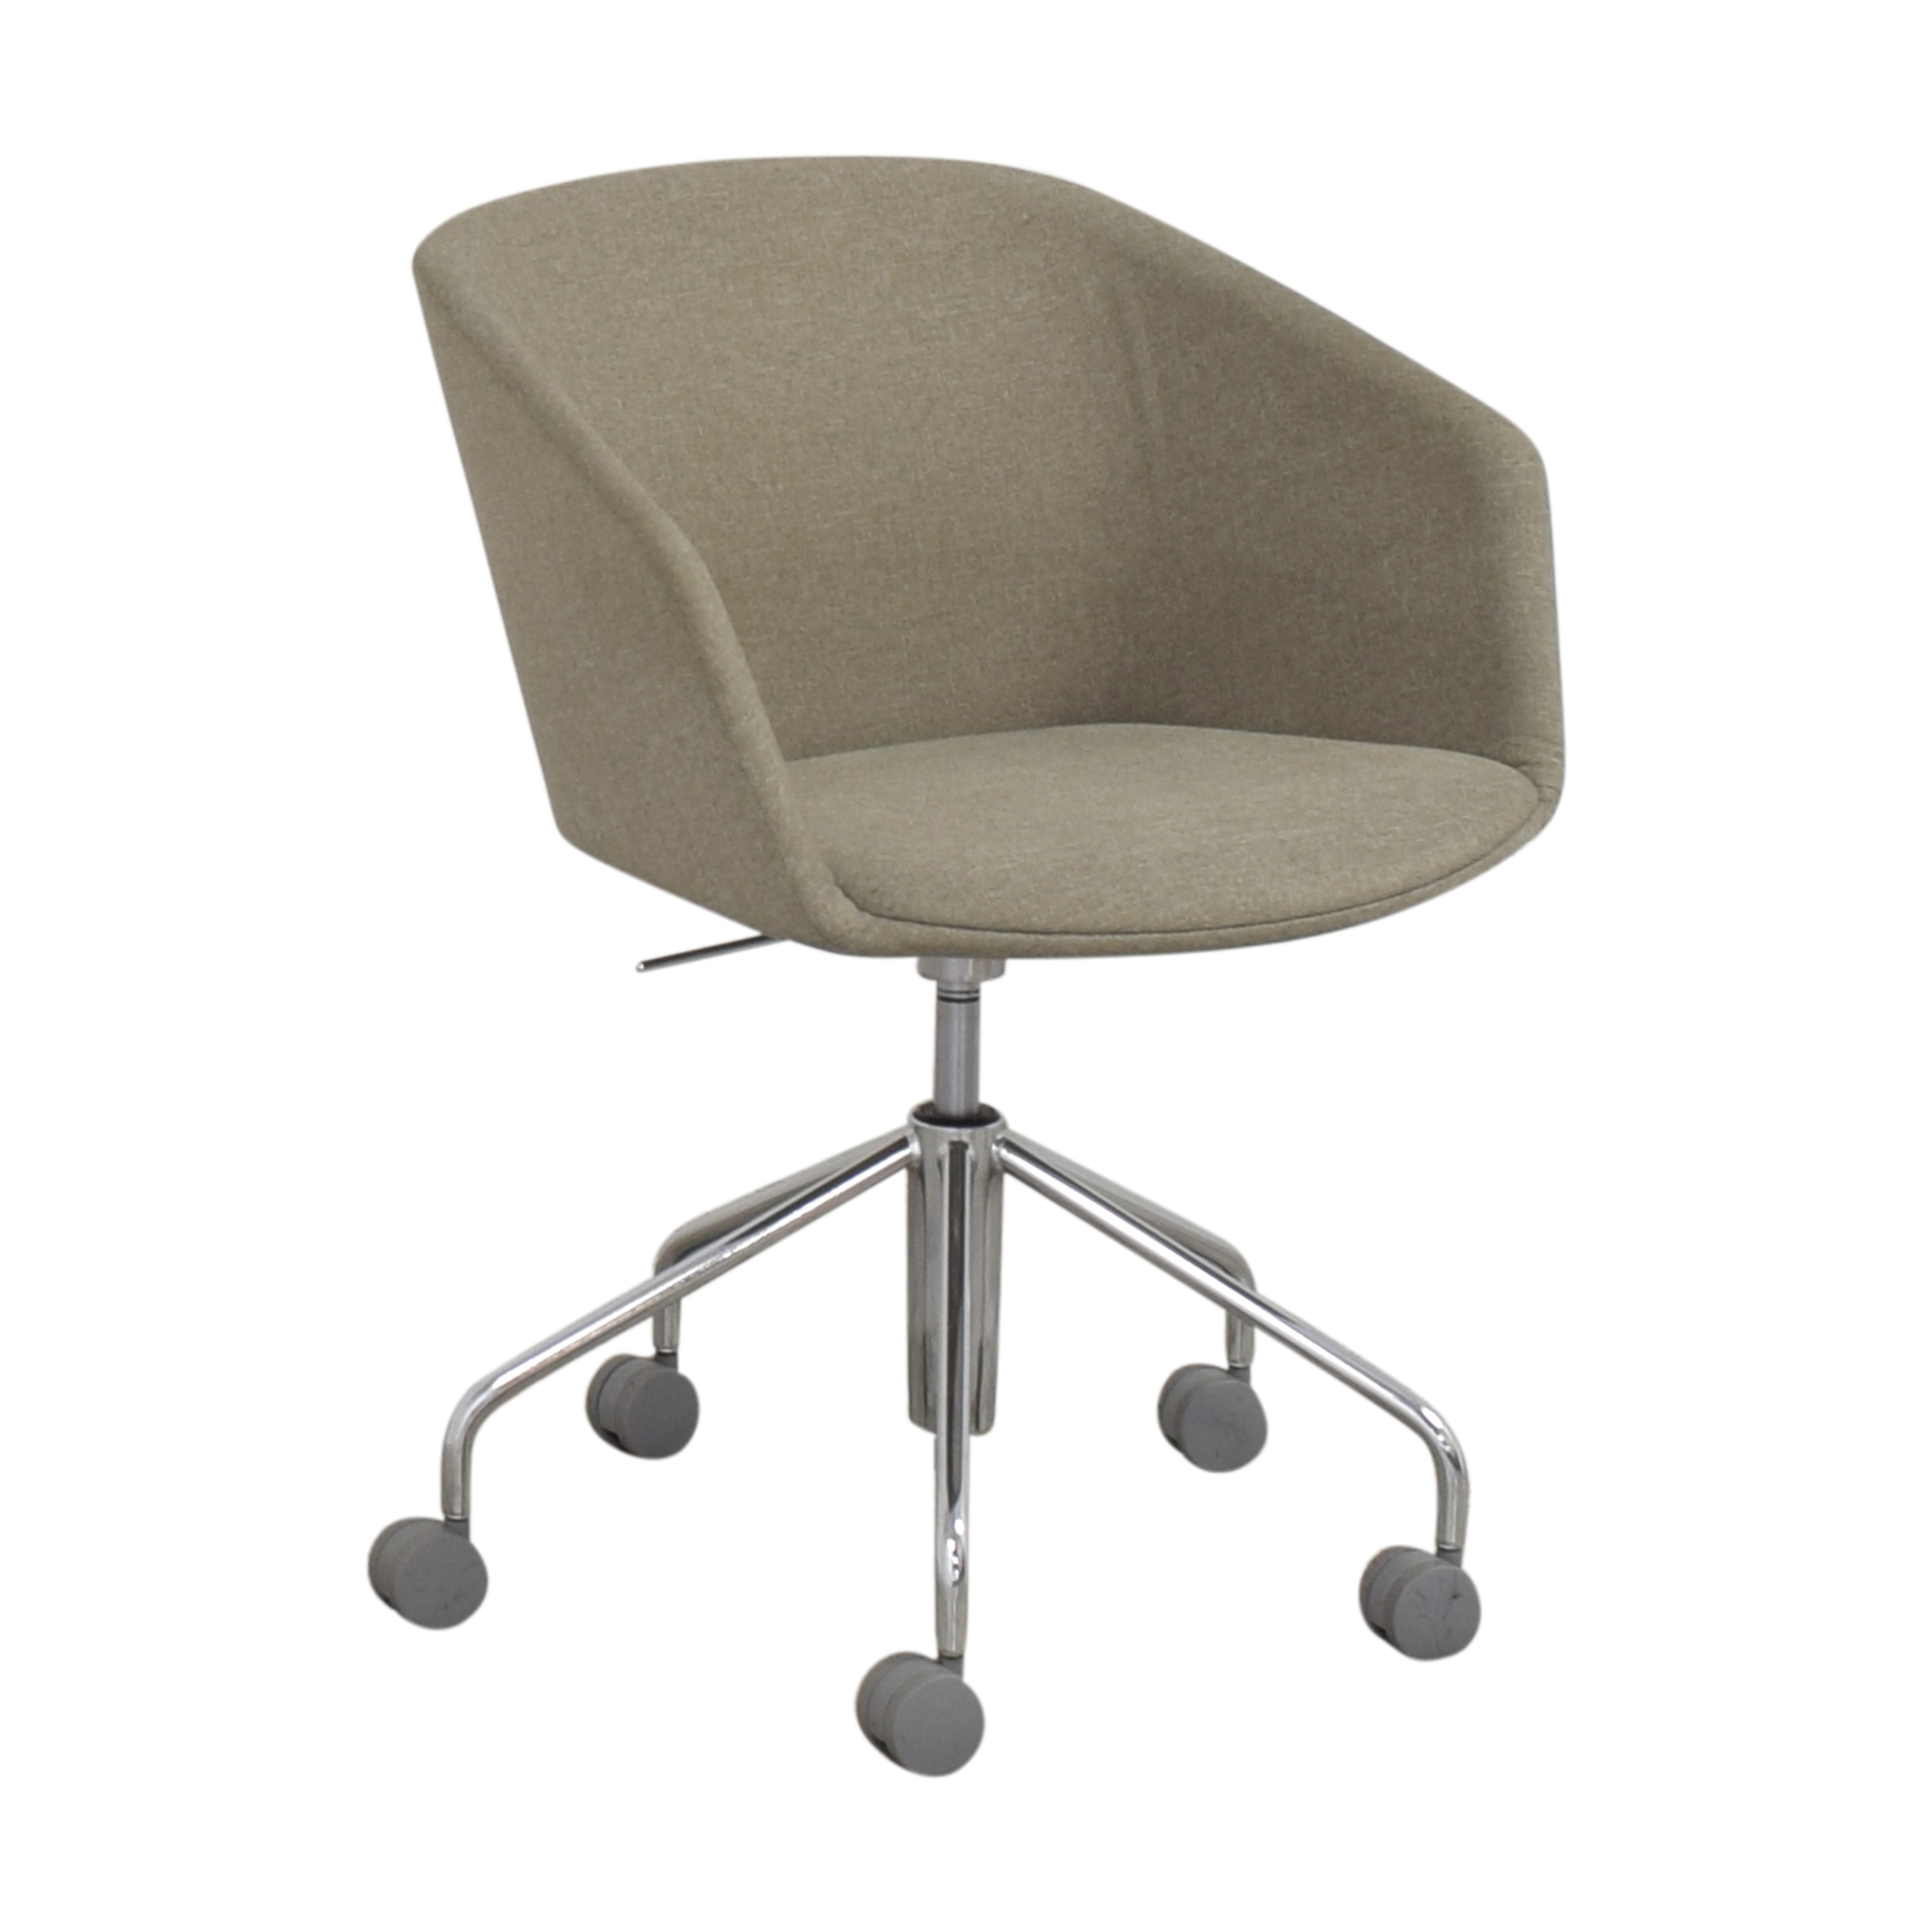 Poppin Poppin Pitch Meeting Chair price